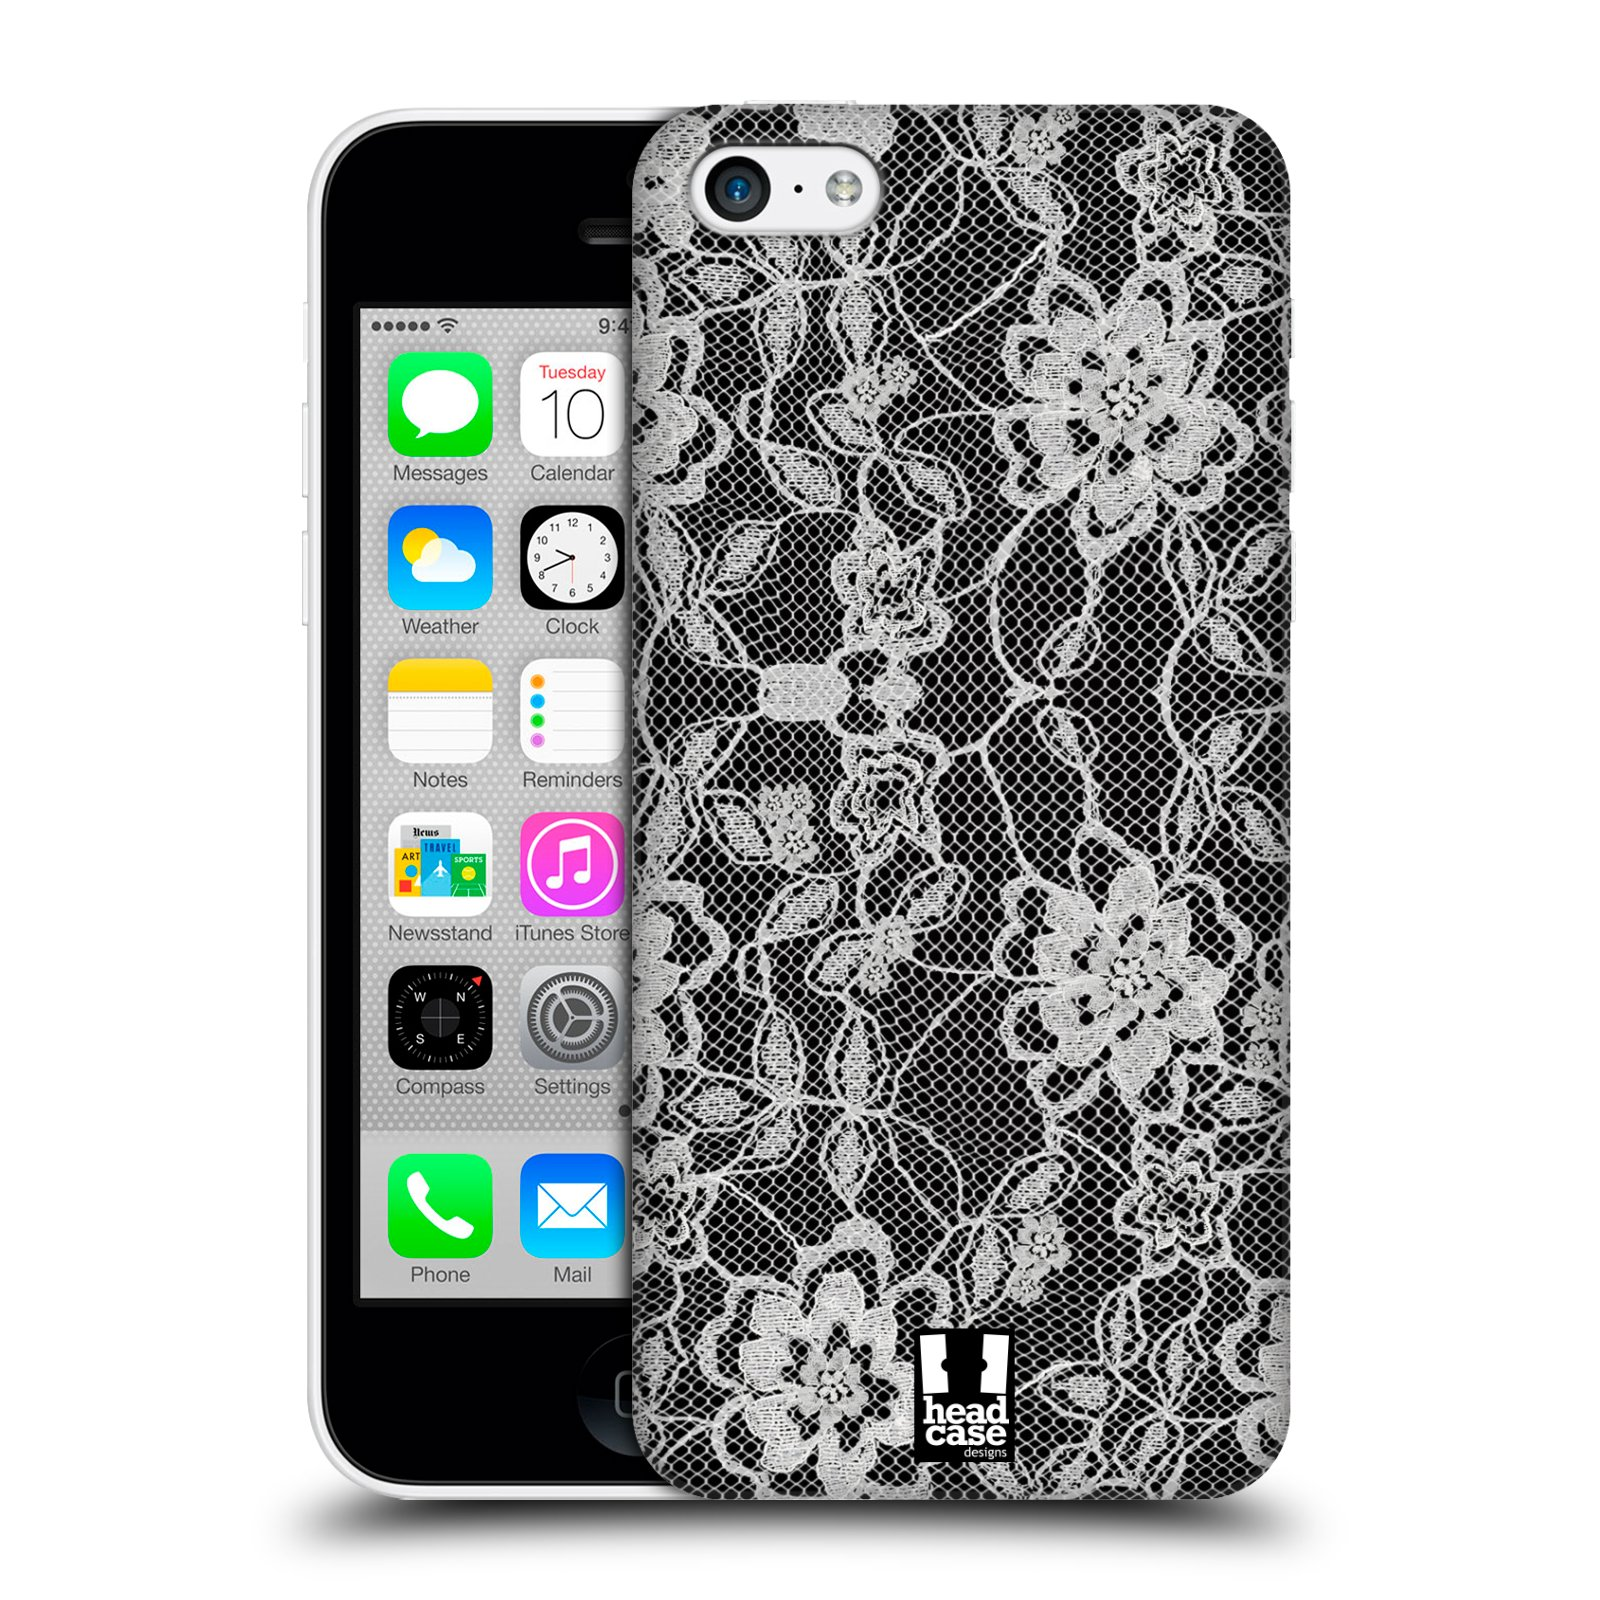 HEAD-CASE-DESIGNS-BLACK-LACE-PROTECTIVE-HARD-BACK-CASE-COVER-FOR-APPLE-iPHONE-5C